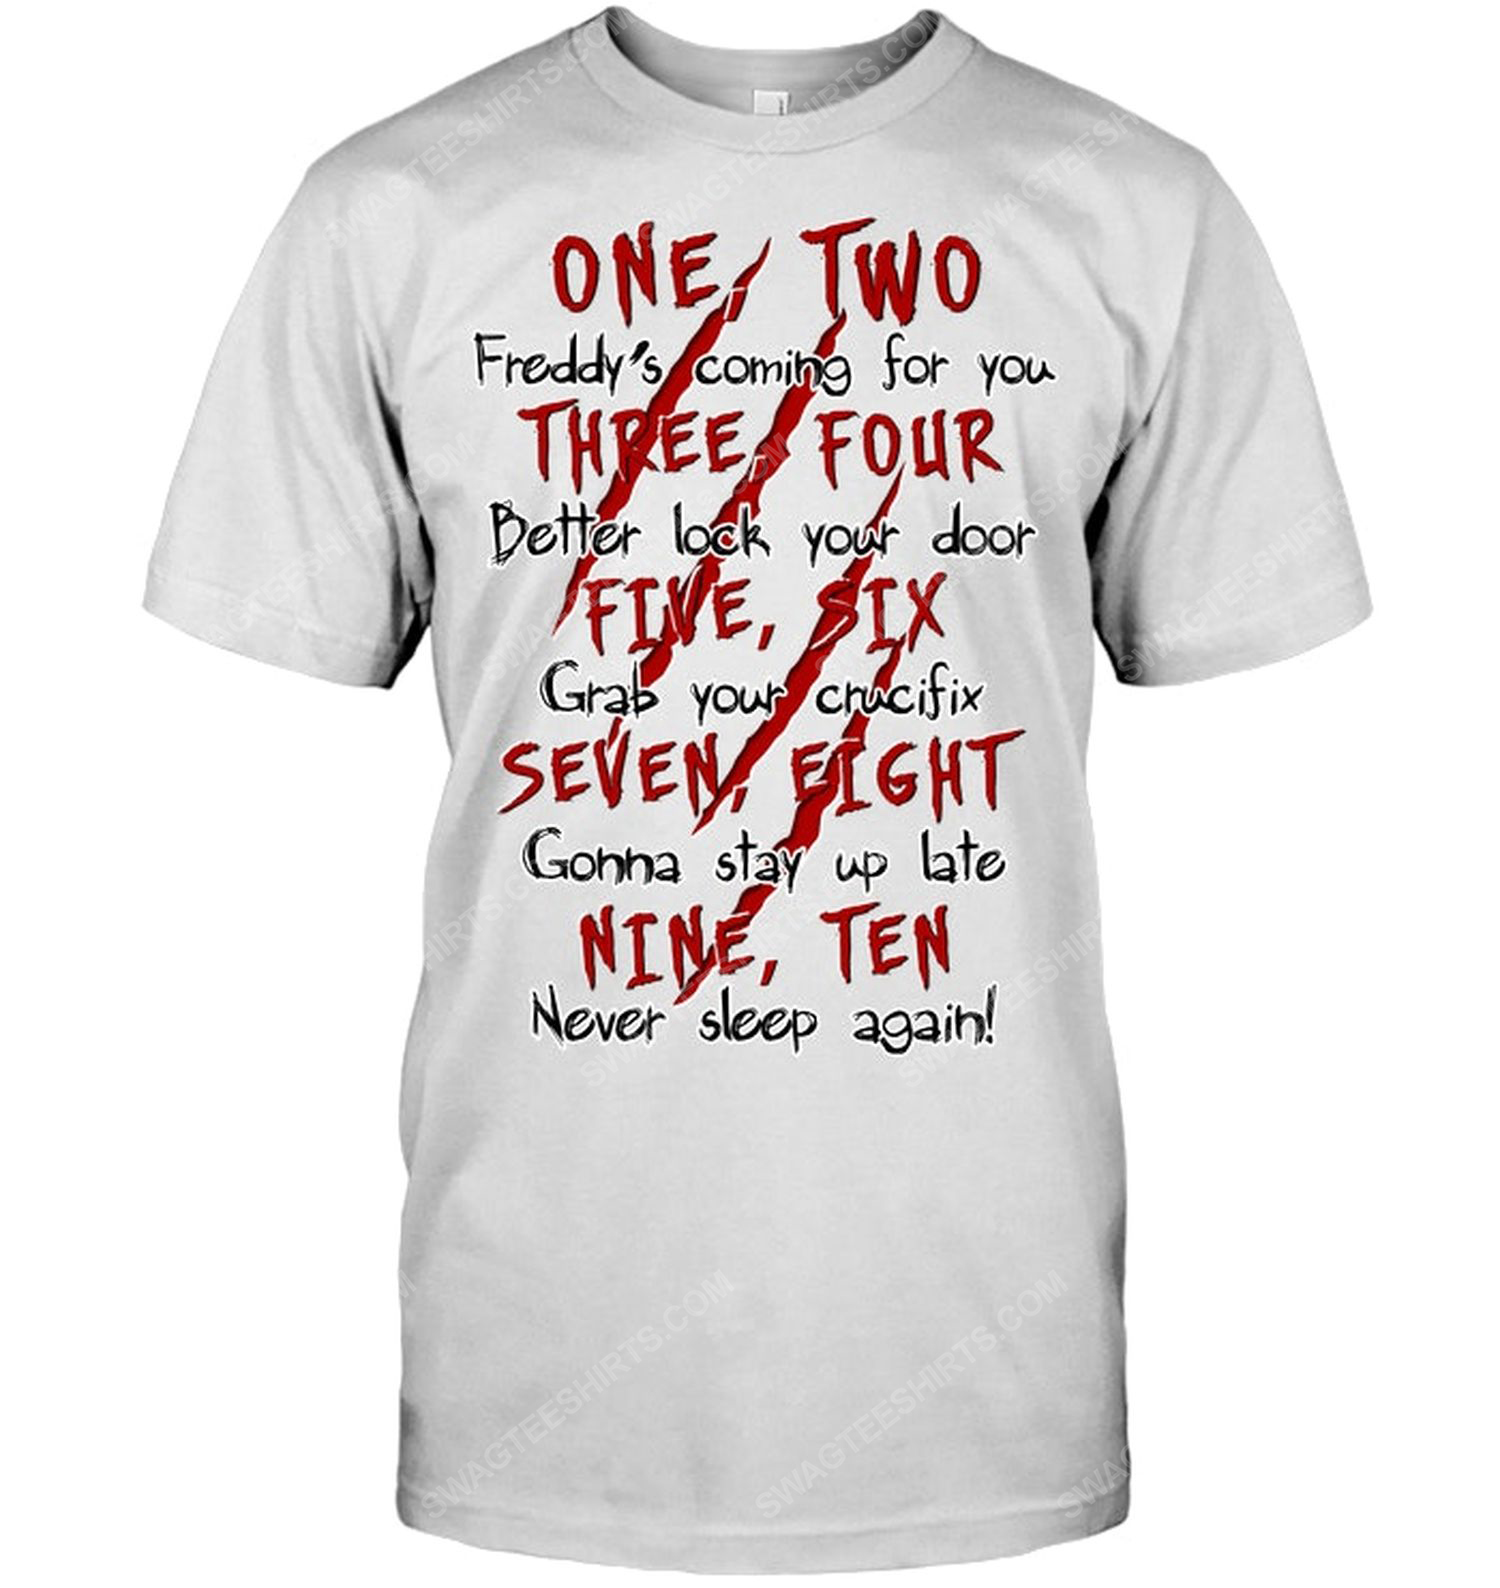 One two three four five for halloween shirt 1